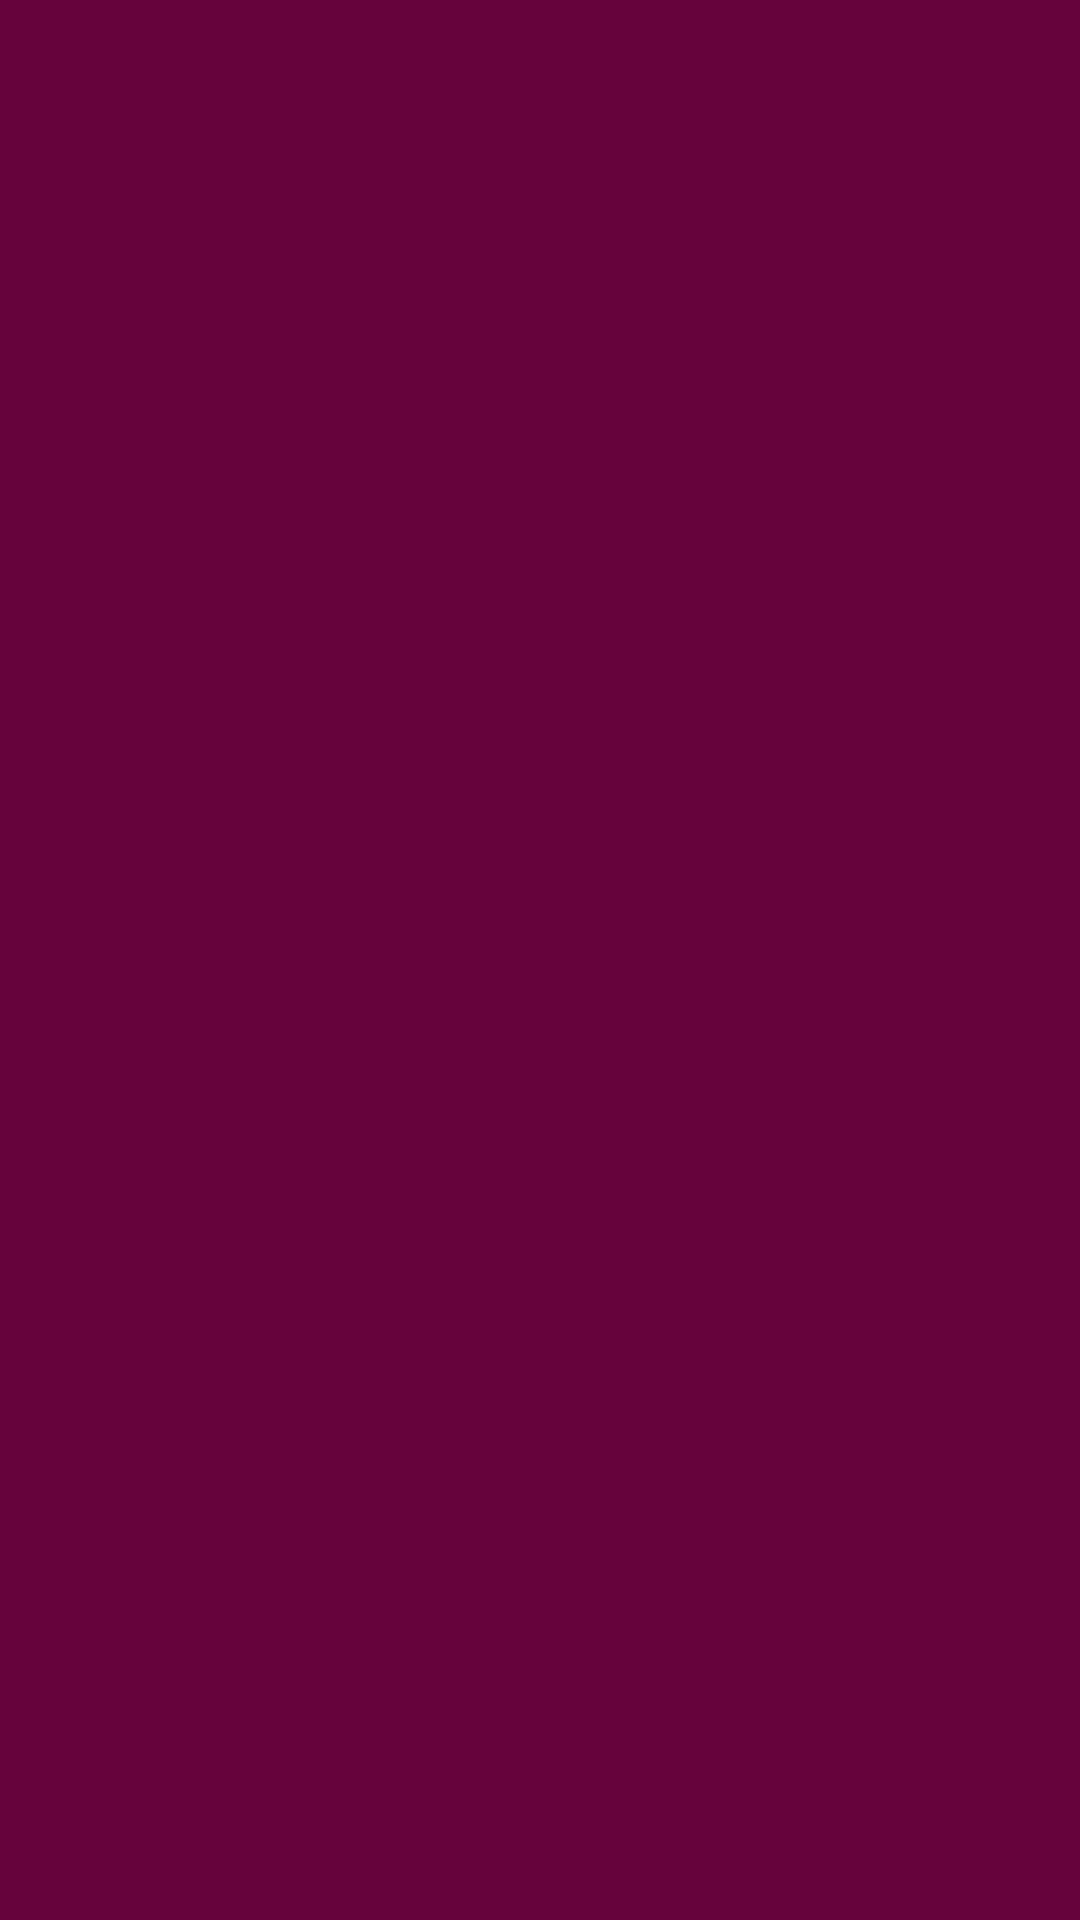 1080x1920 Tyrian Purple Solid Color Background